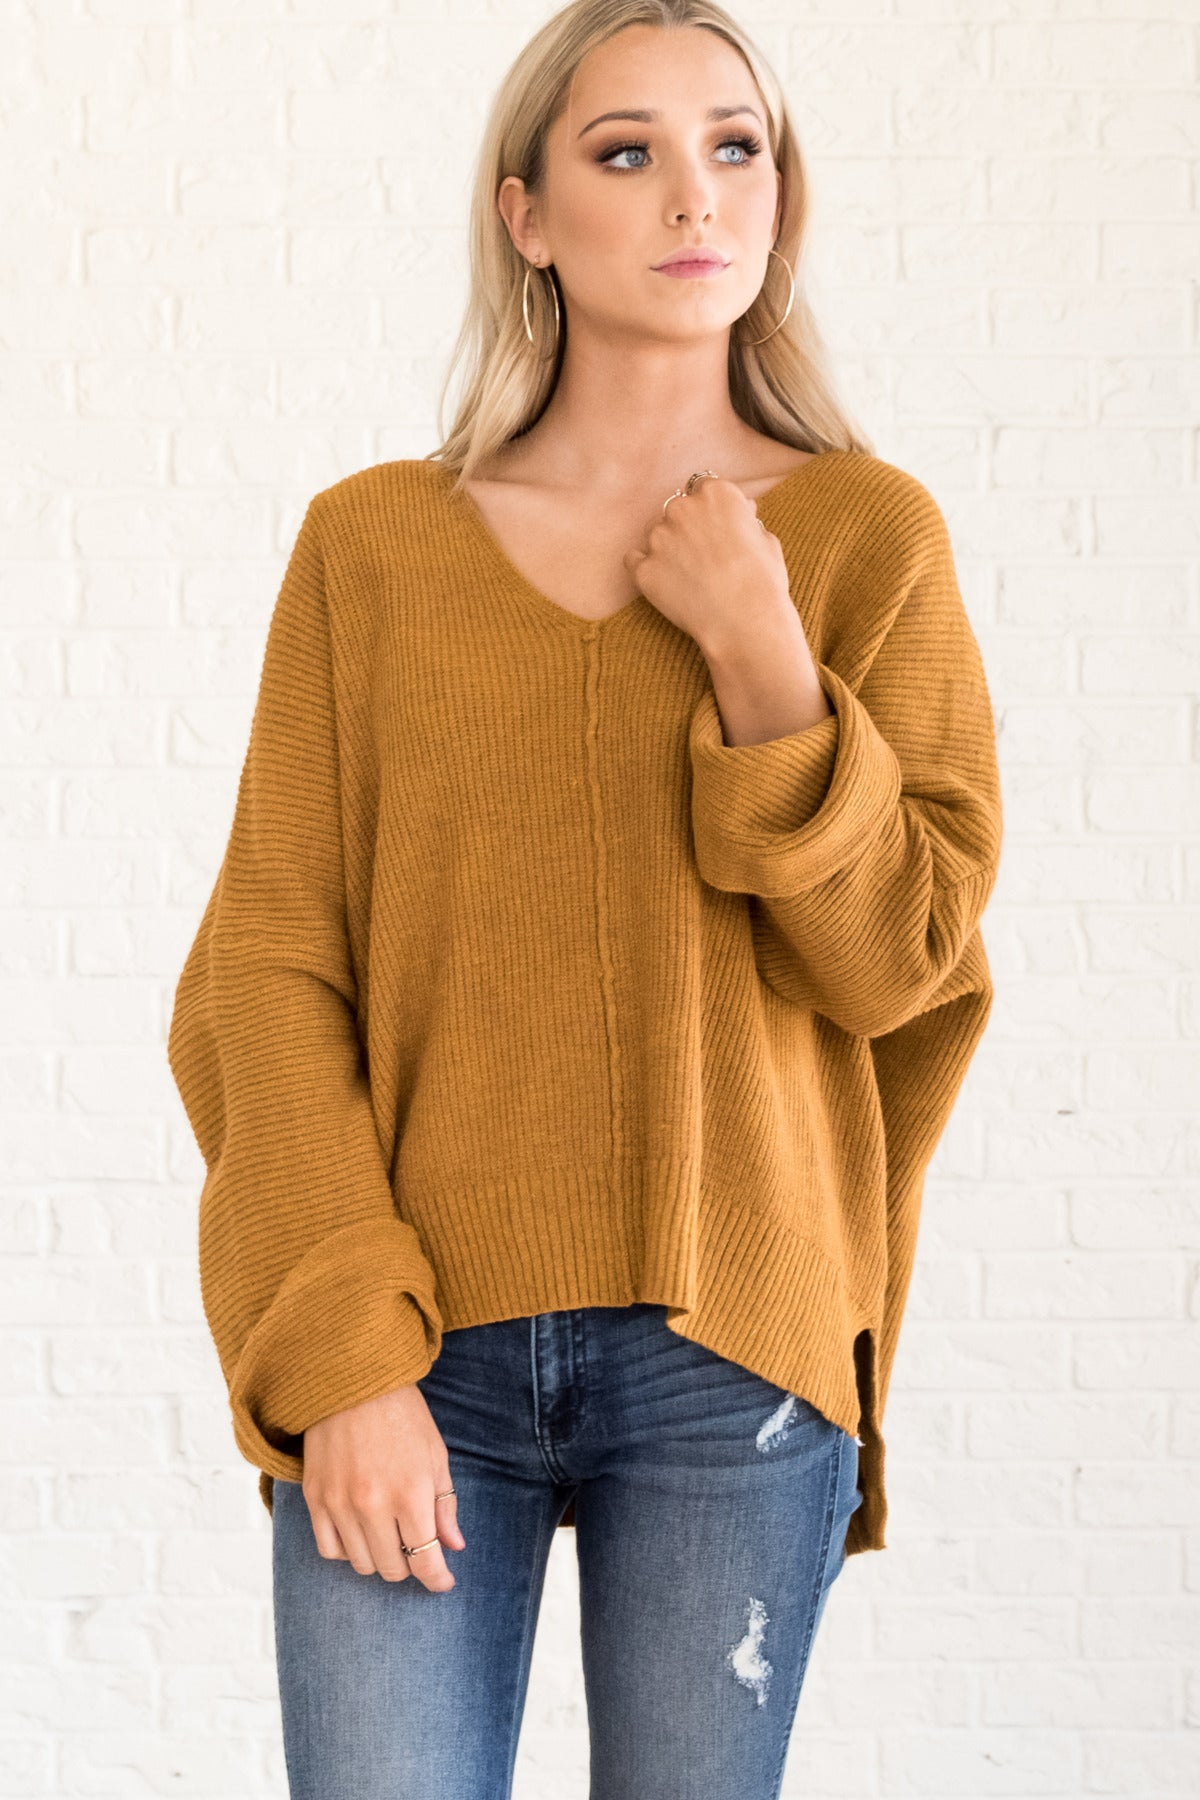 Mustard Yellow Oversized Boyfriend Pullover Knit Sweater Warm Cozy